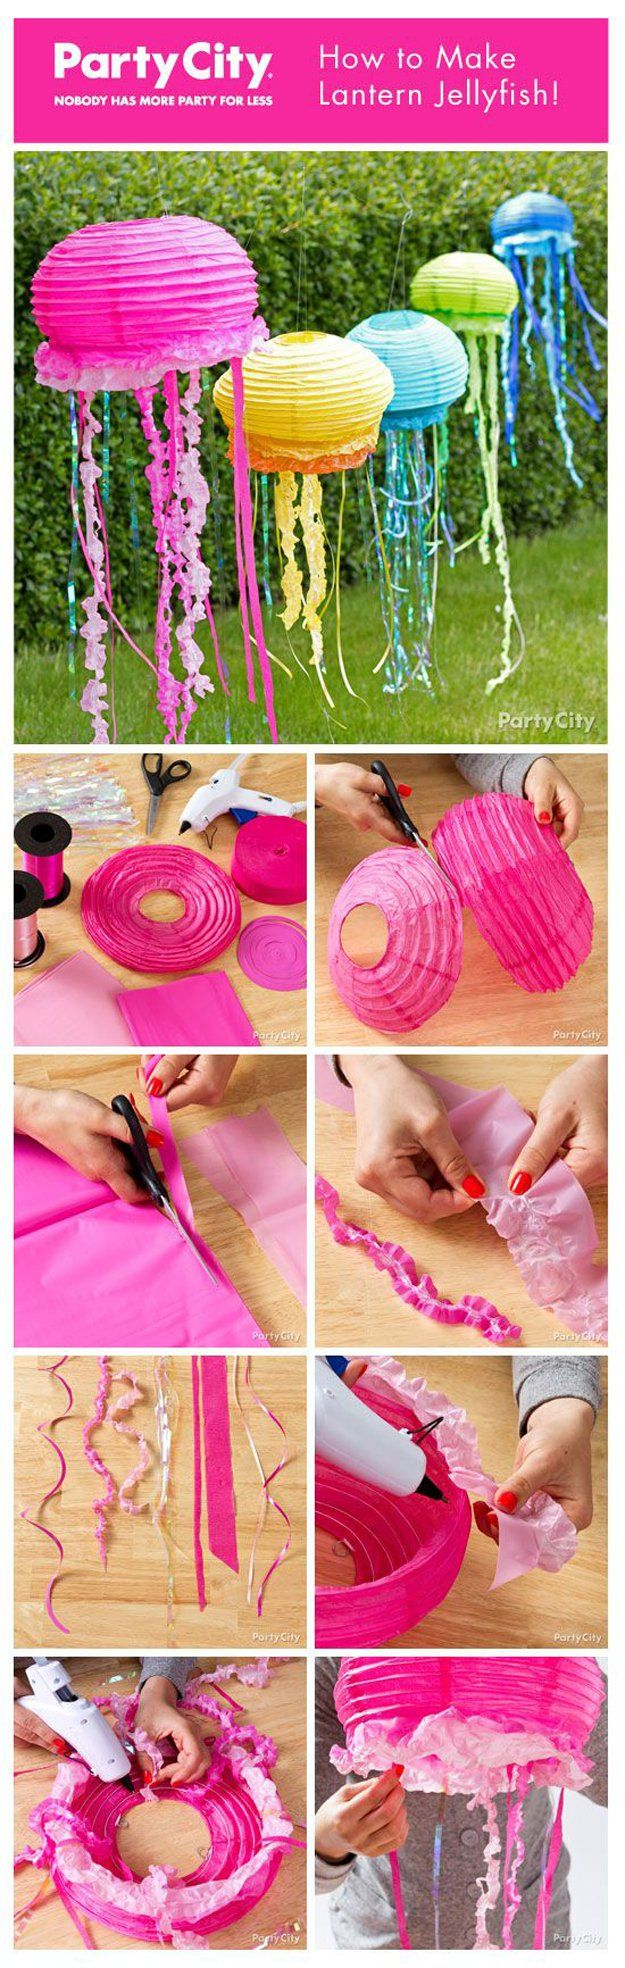 Birthday Party Craft Ideas For Kids Part - 18: 19 Awesome Birthday Party Craft Ideas That Will Make Your Day Special  DIYReady.com |